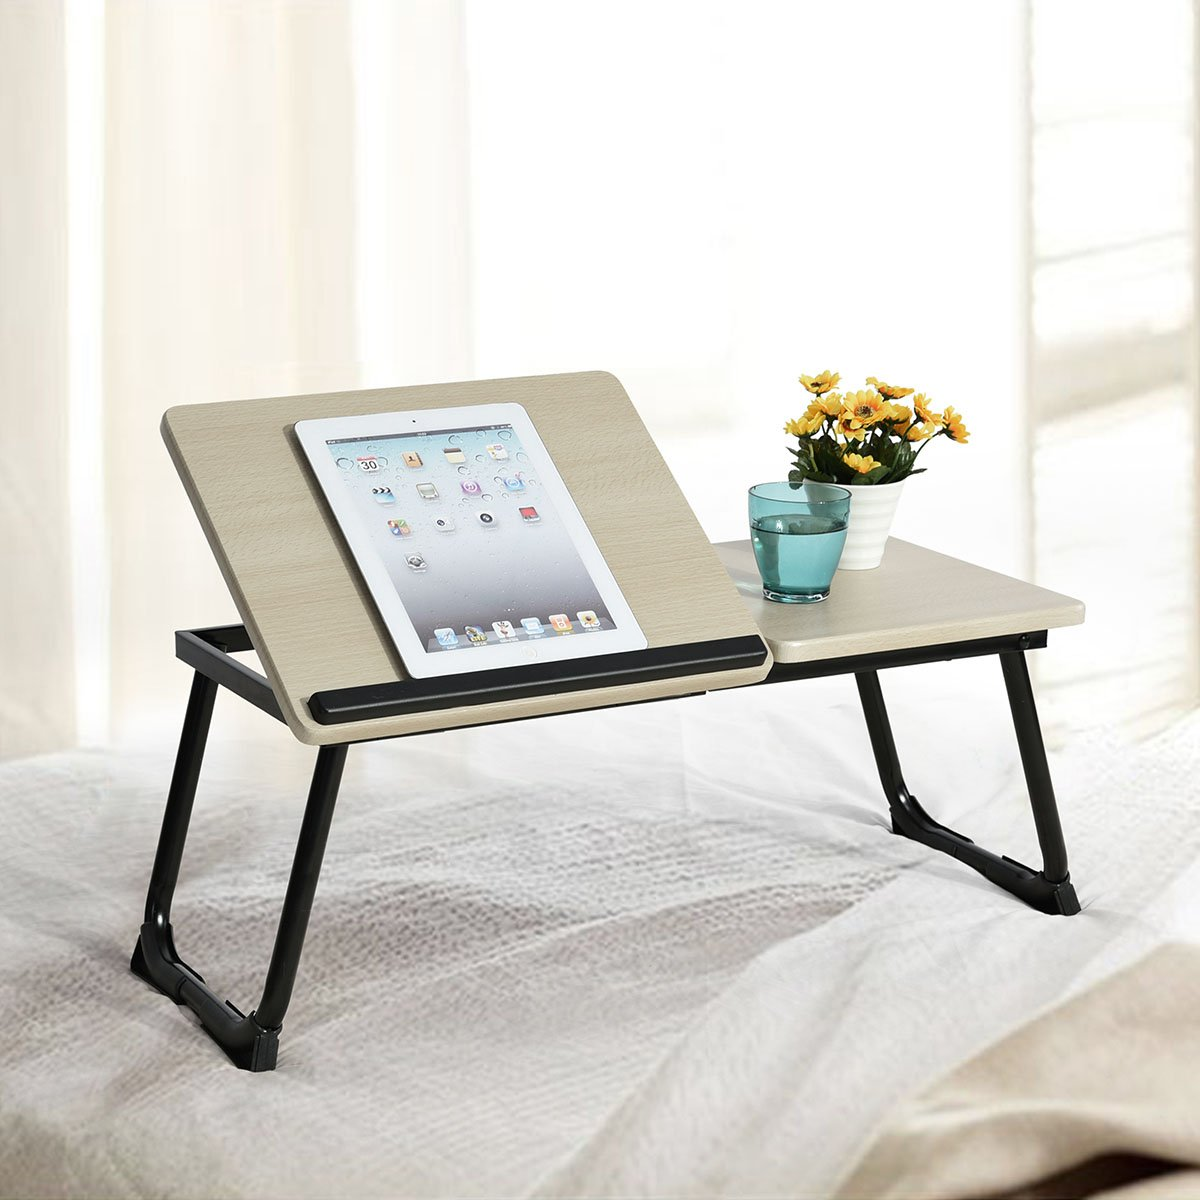 "Foldable Laptop Desk Ihouse Portable Desk Bed Folding Computer Table with Anti-Slip Bar Suits for Ipad 14-17"" Notebook Black"